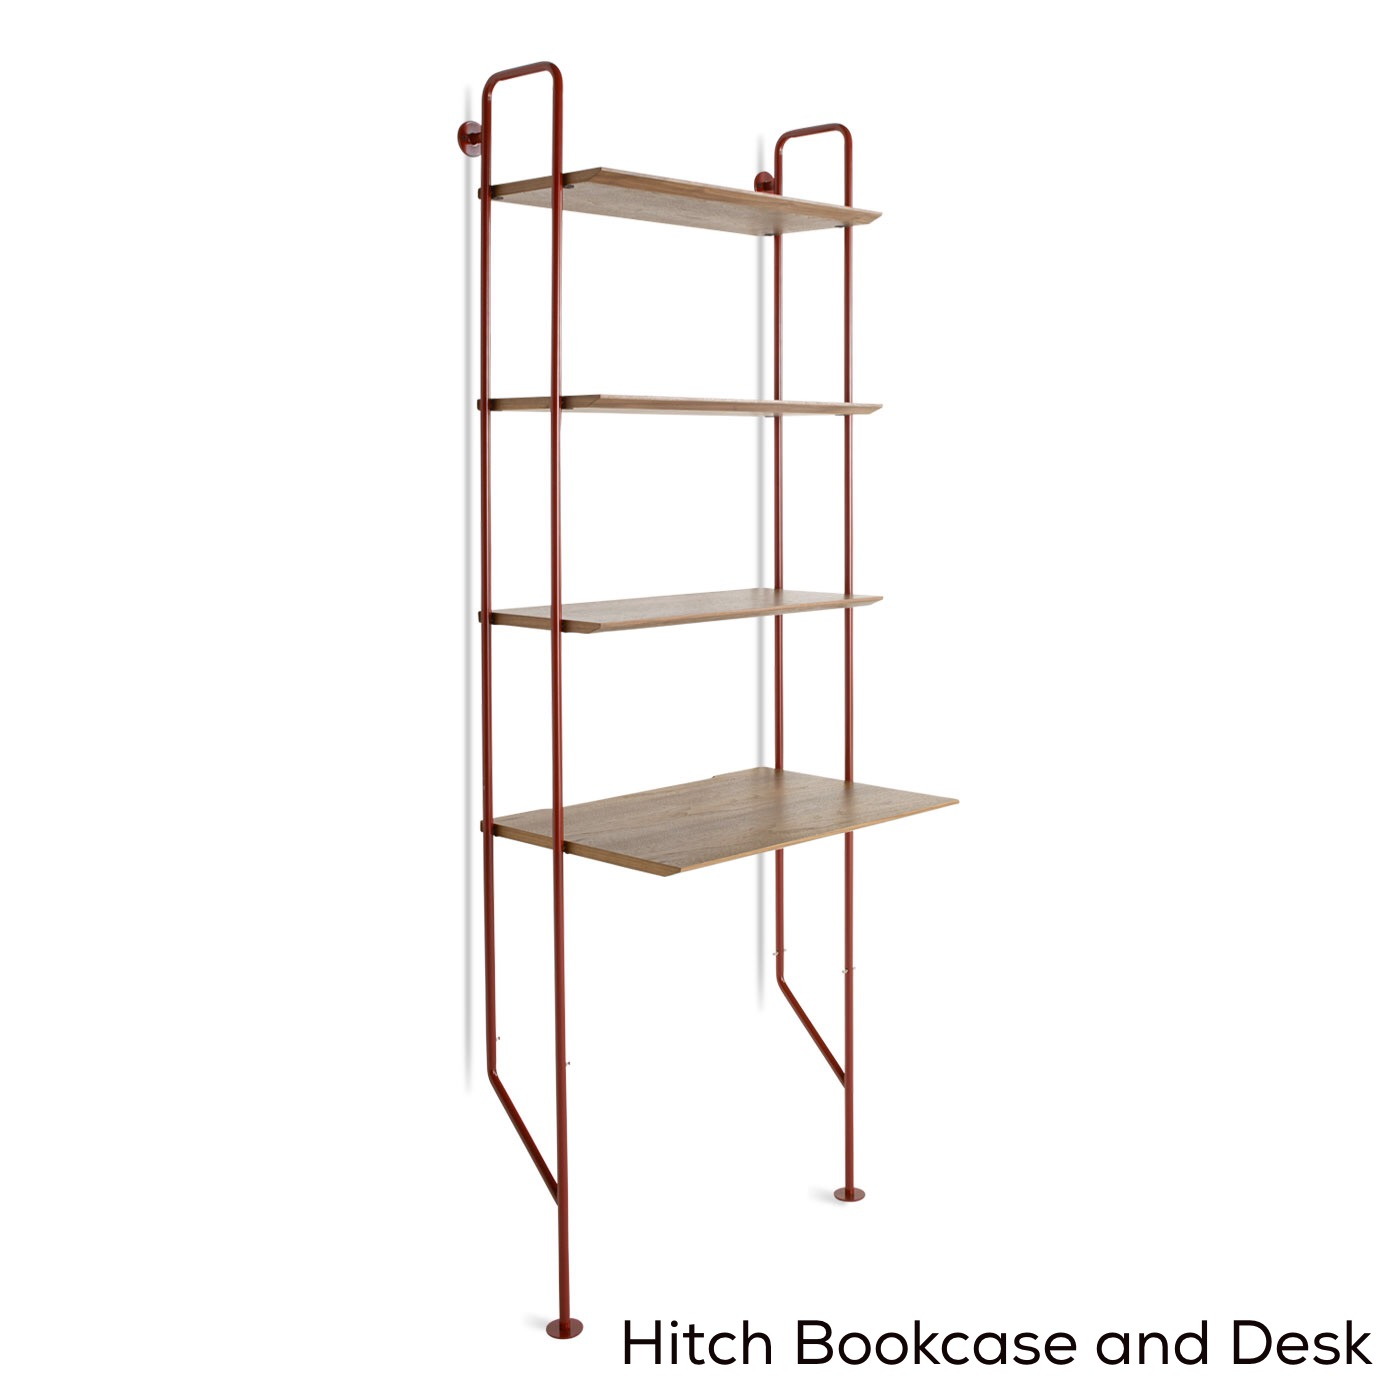 Blu Dot Hitch Bookcase and Desk